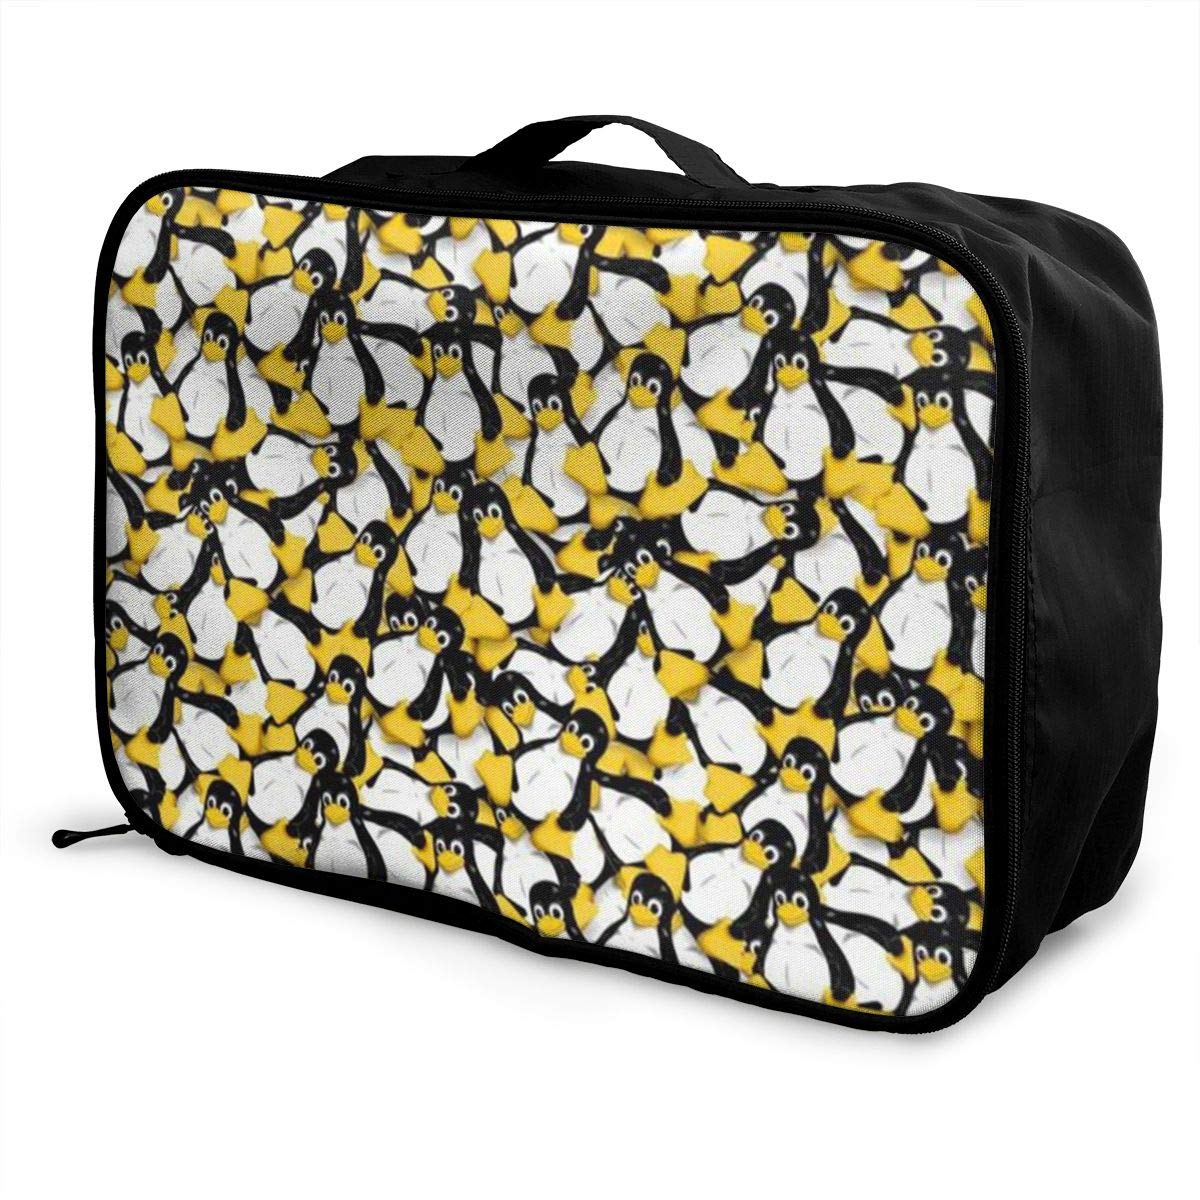 ADGAI Tux The Linux Penguin Canvas Travel Weekender Bag,Fashion Custom Lightweight Large Capacity Portable Luggage Bag,Suitcase Trolley Bag